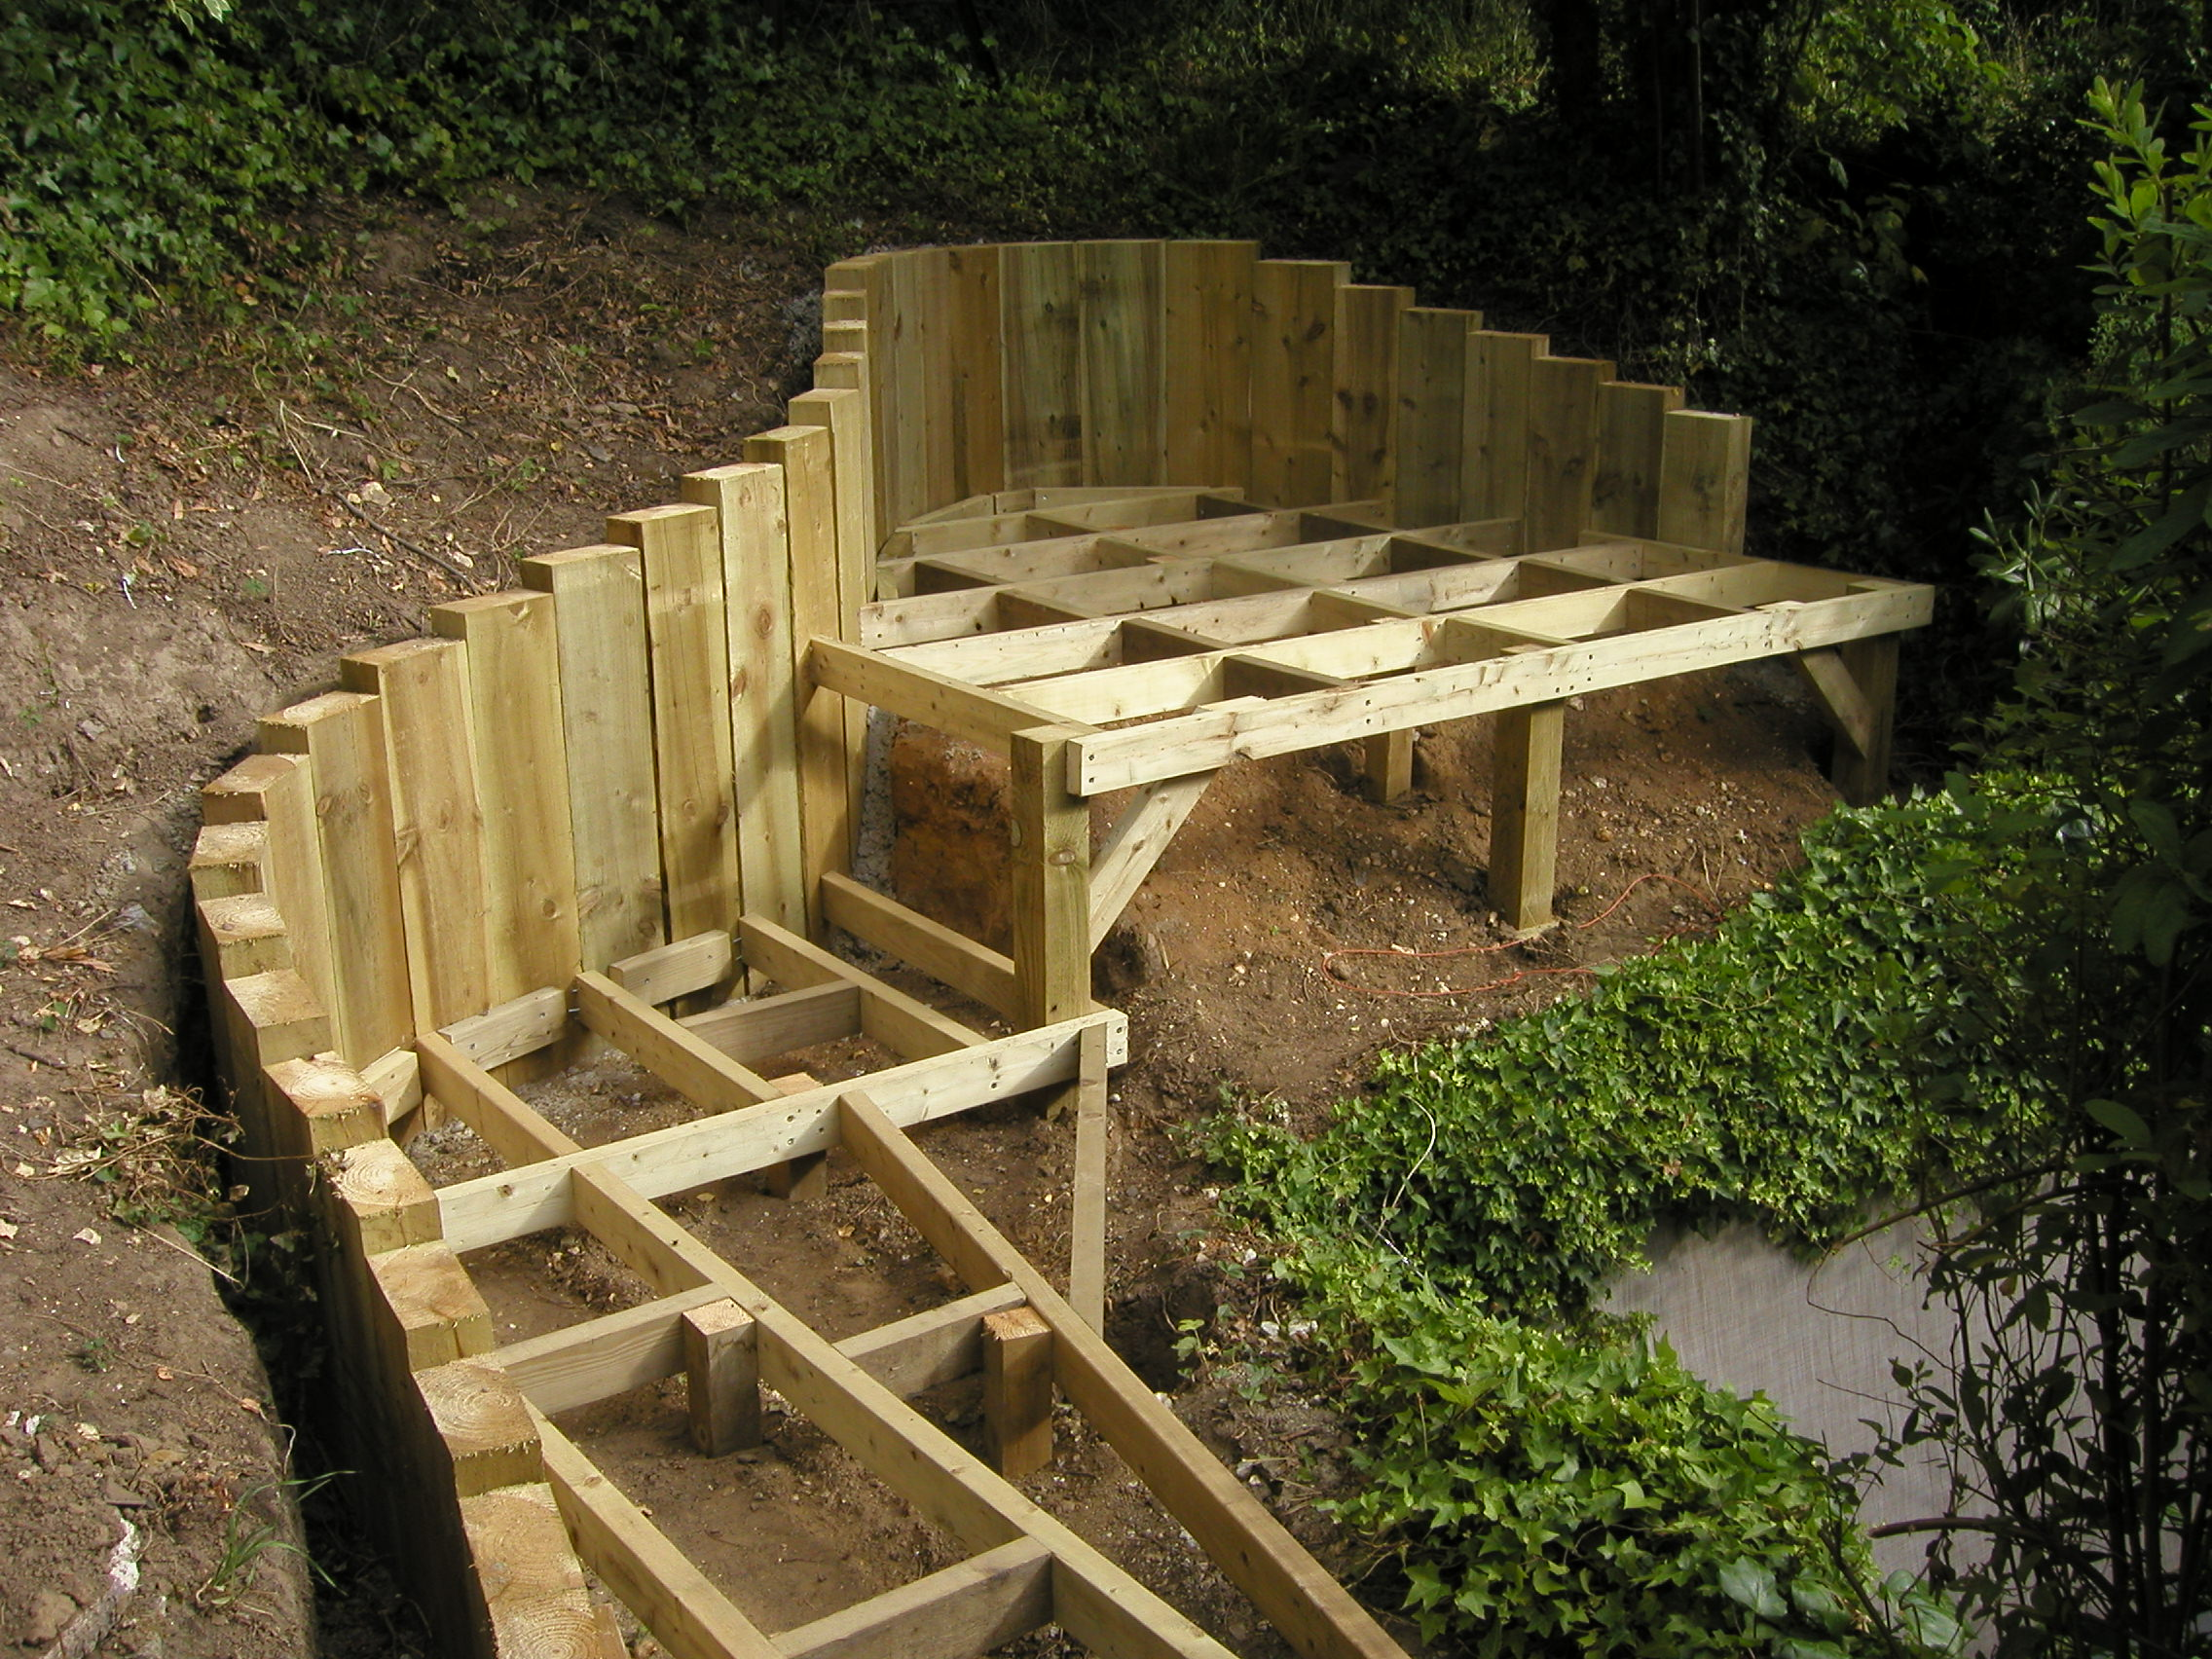 Adl timber structures decking garden landscaping sevenoaks for Which timber for decking